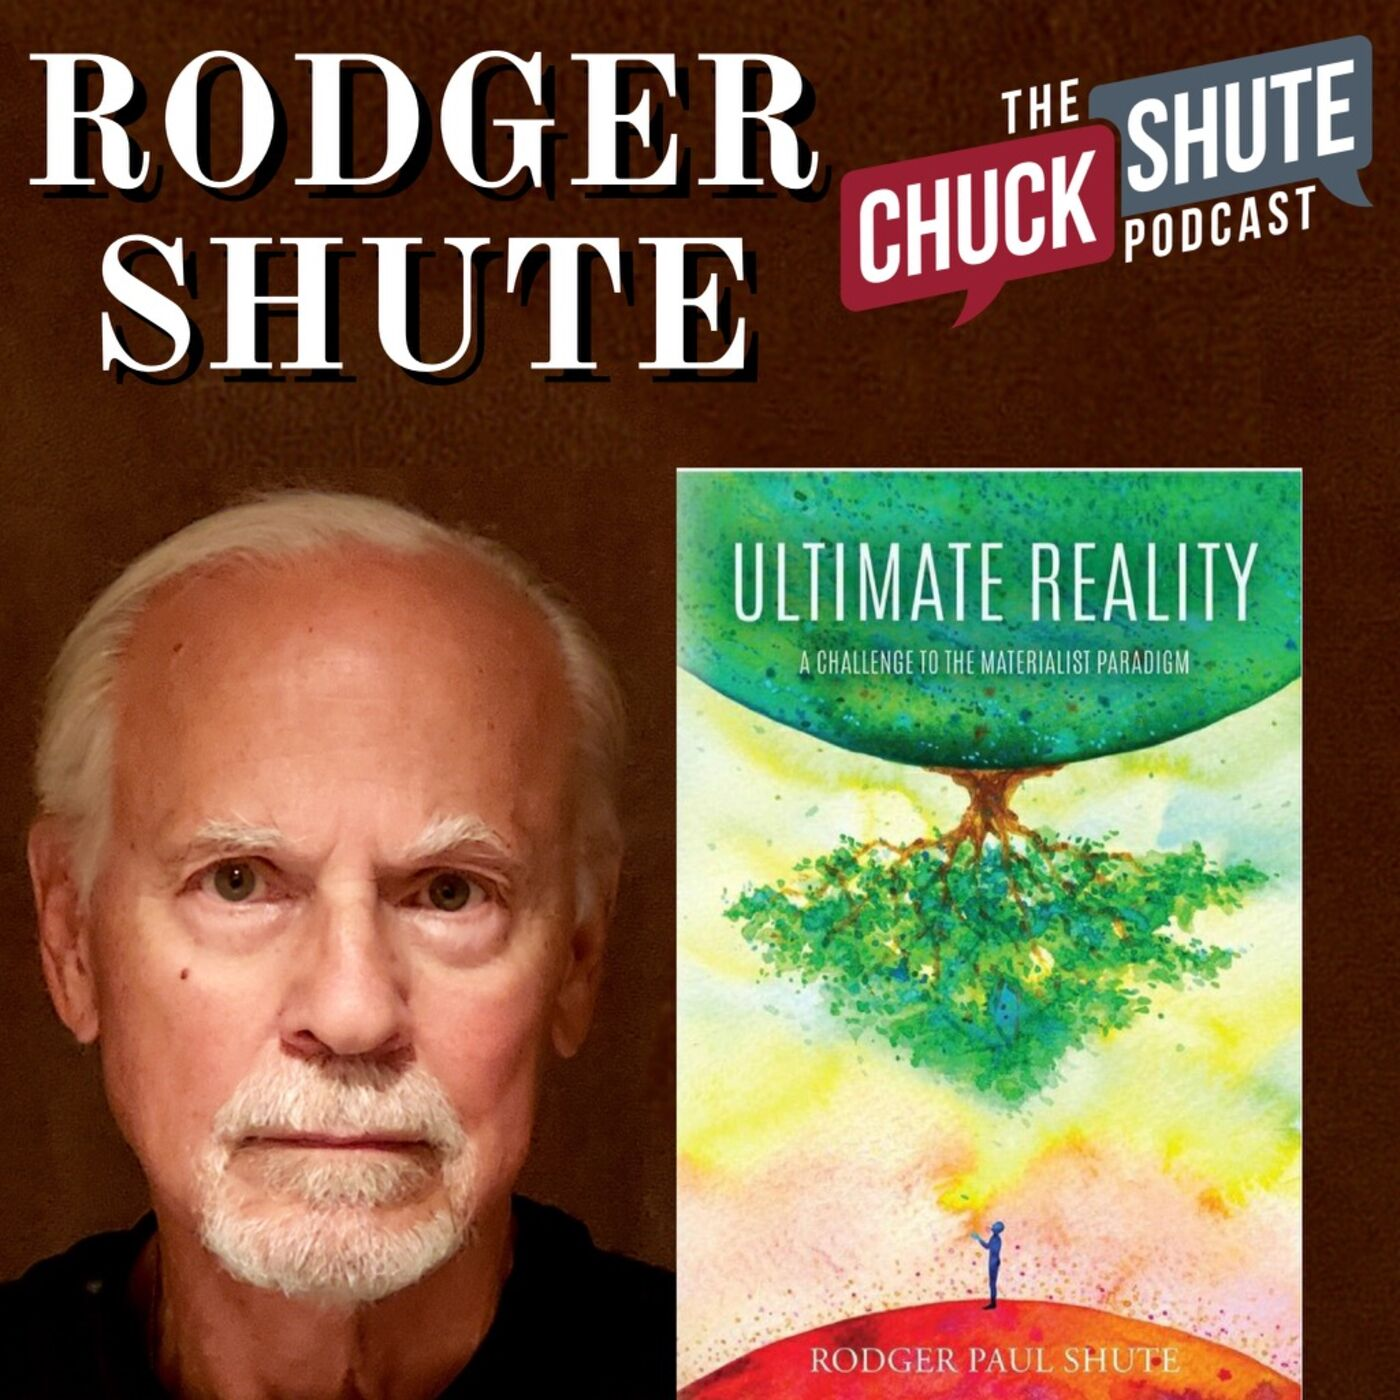 Rodger Shute (author)